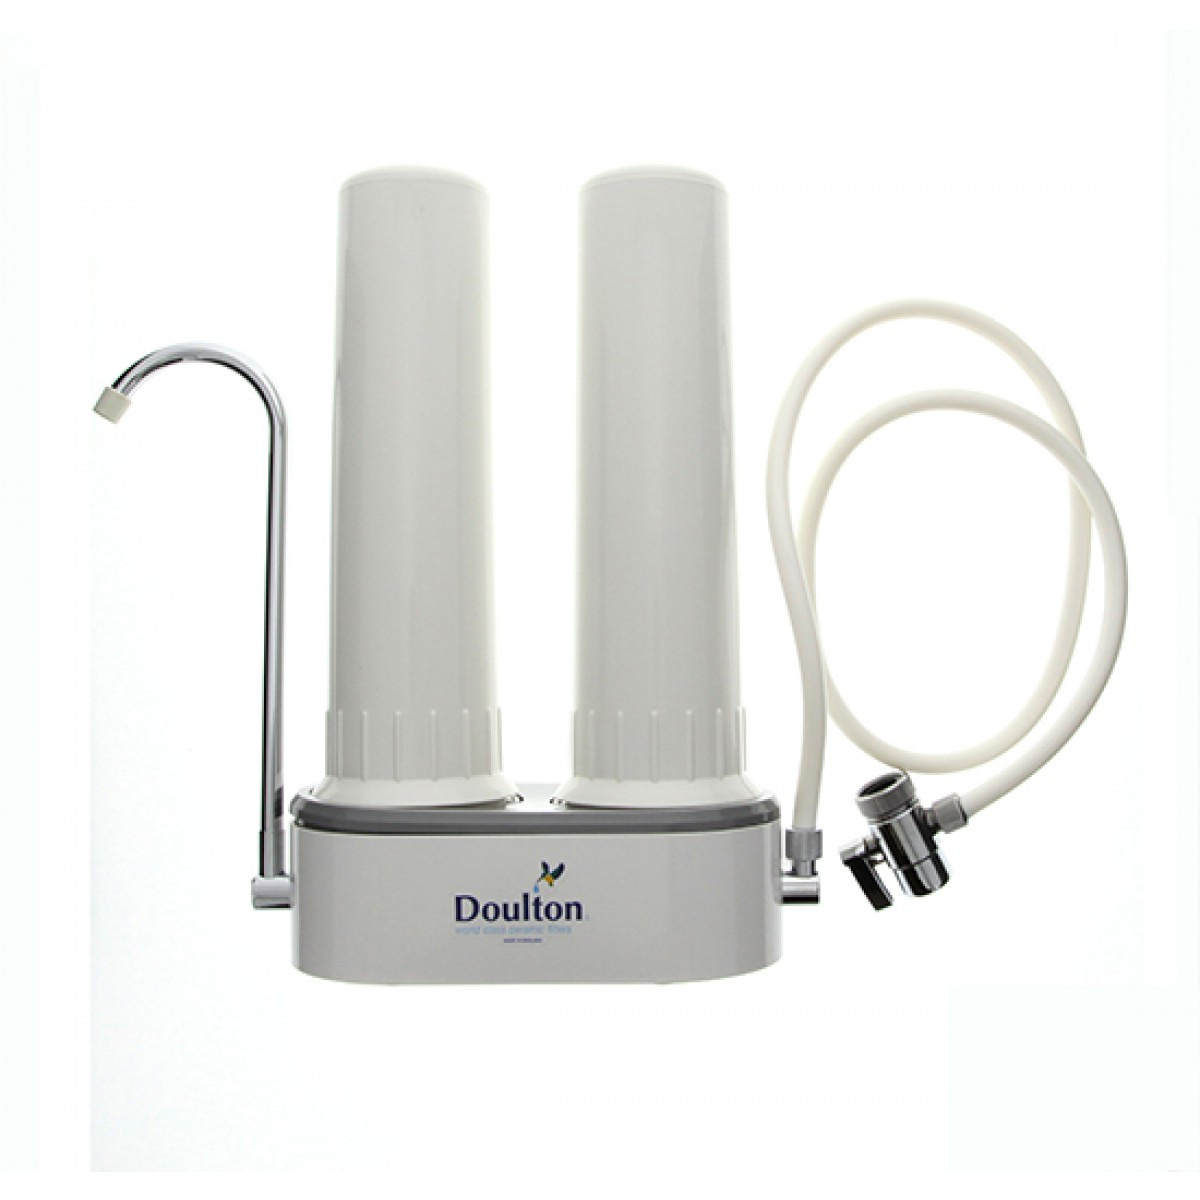 Doulton W9380003 Countertop Water Filter